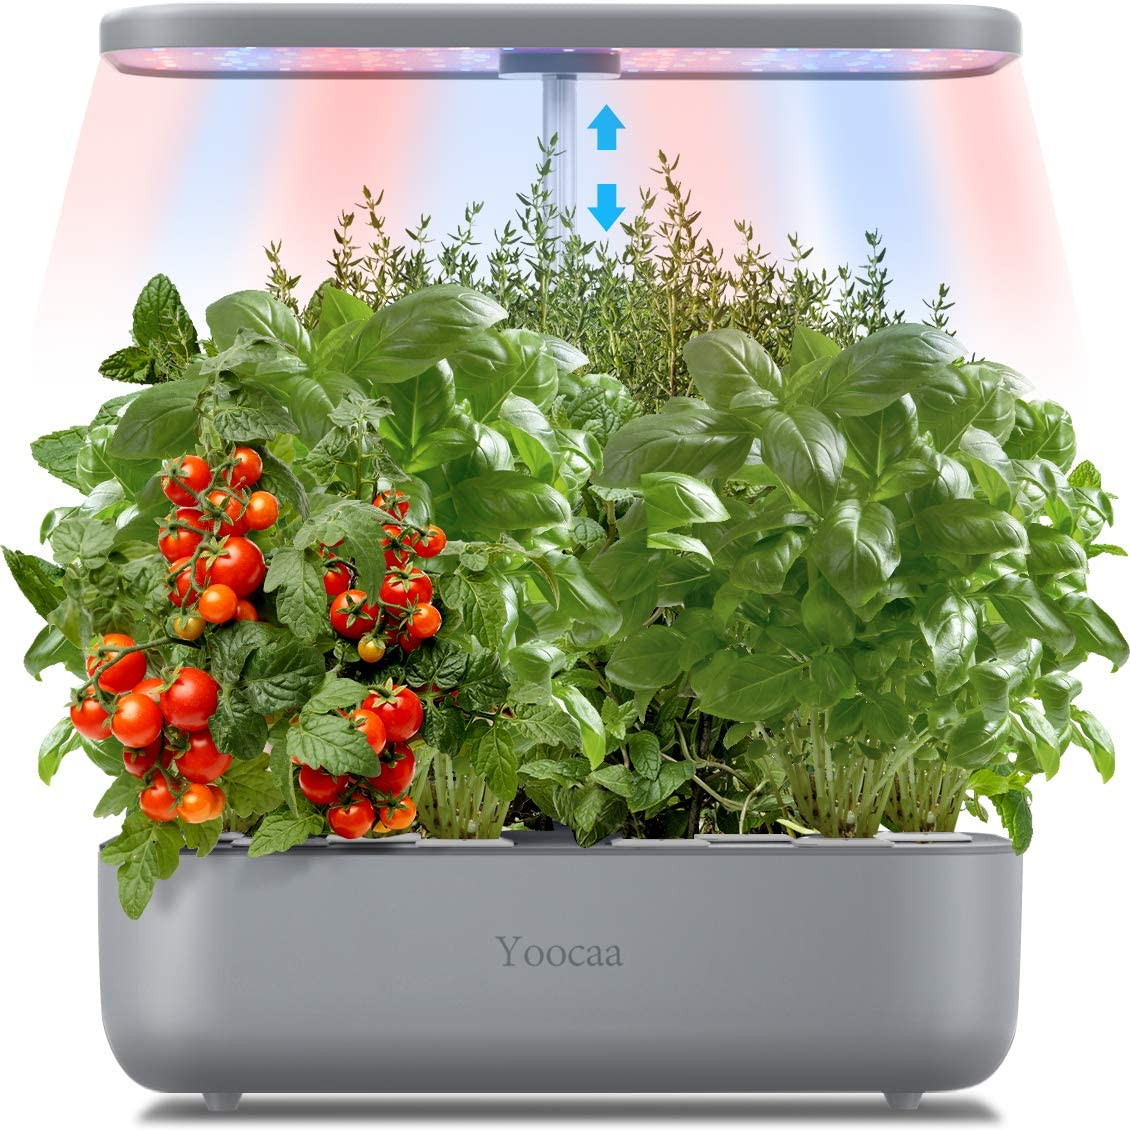 Yoocaa 12 Pods Hydroponics Growing System Indoor, Large Indoor Herb Garden with LED Light, Up to 19.4'' Height Adjustable Hydroponics Gardening System for Home Kitchen Gardening